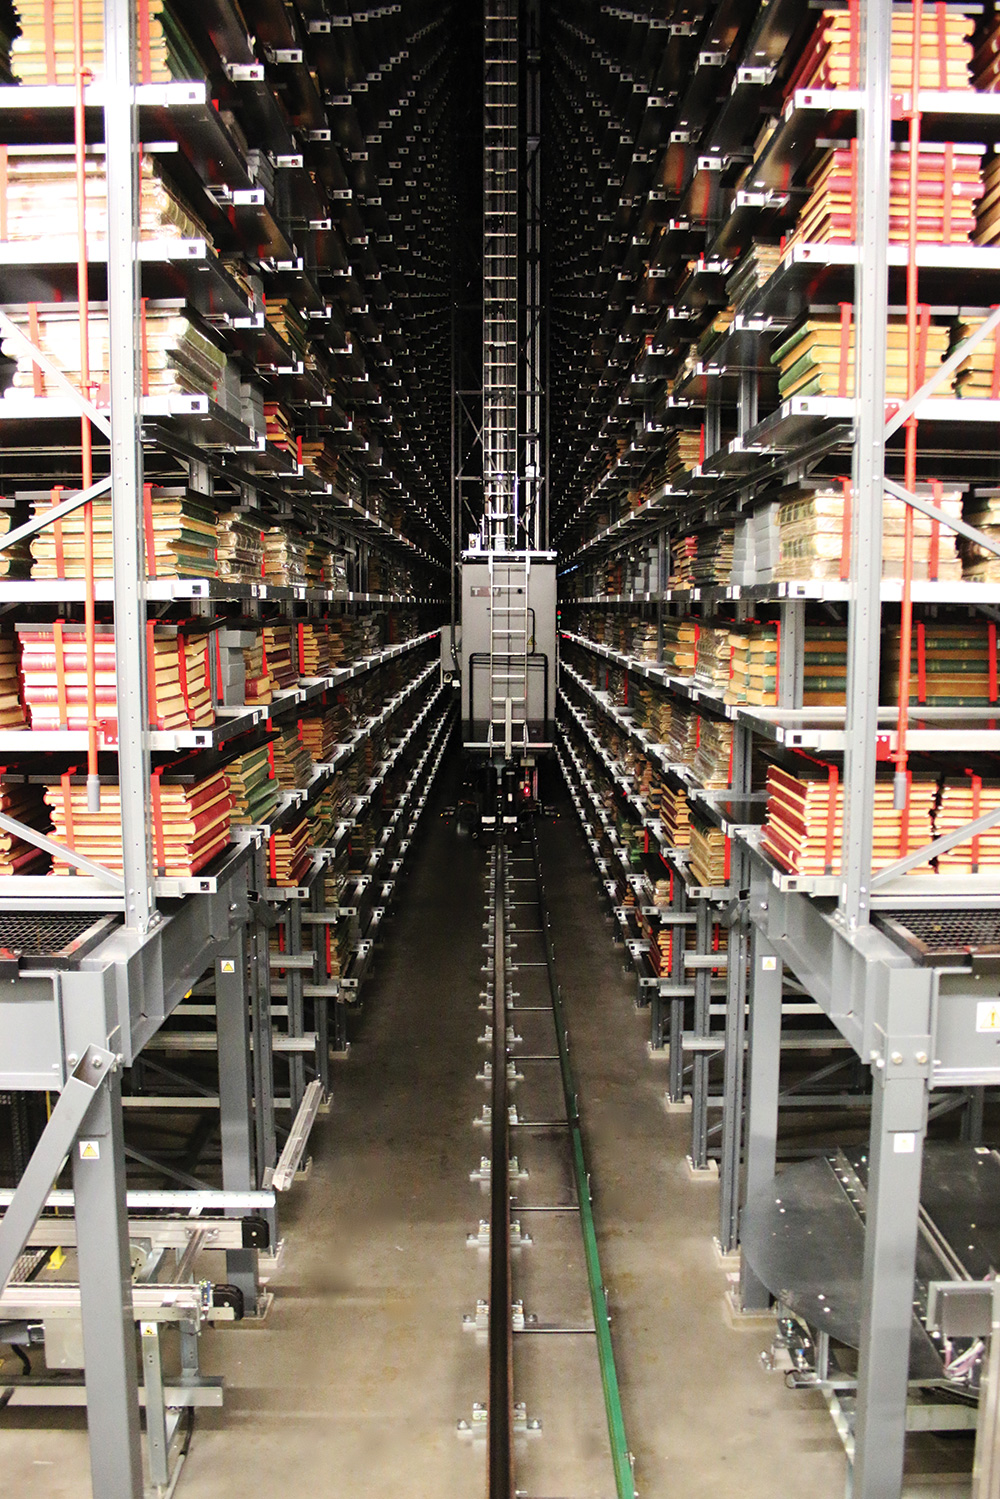 Shelves in the Boston Spa site.